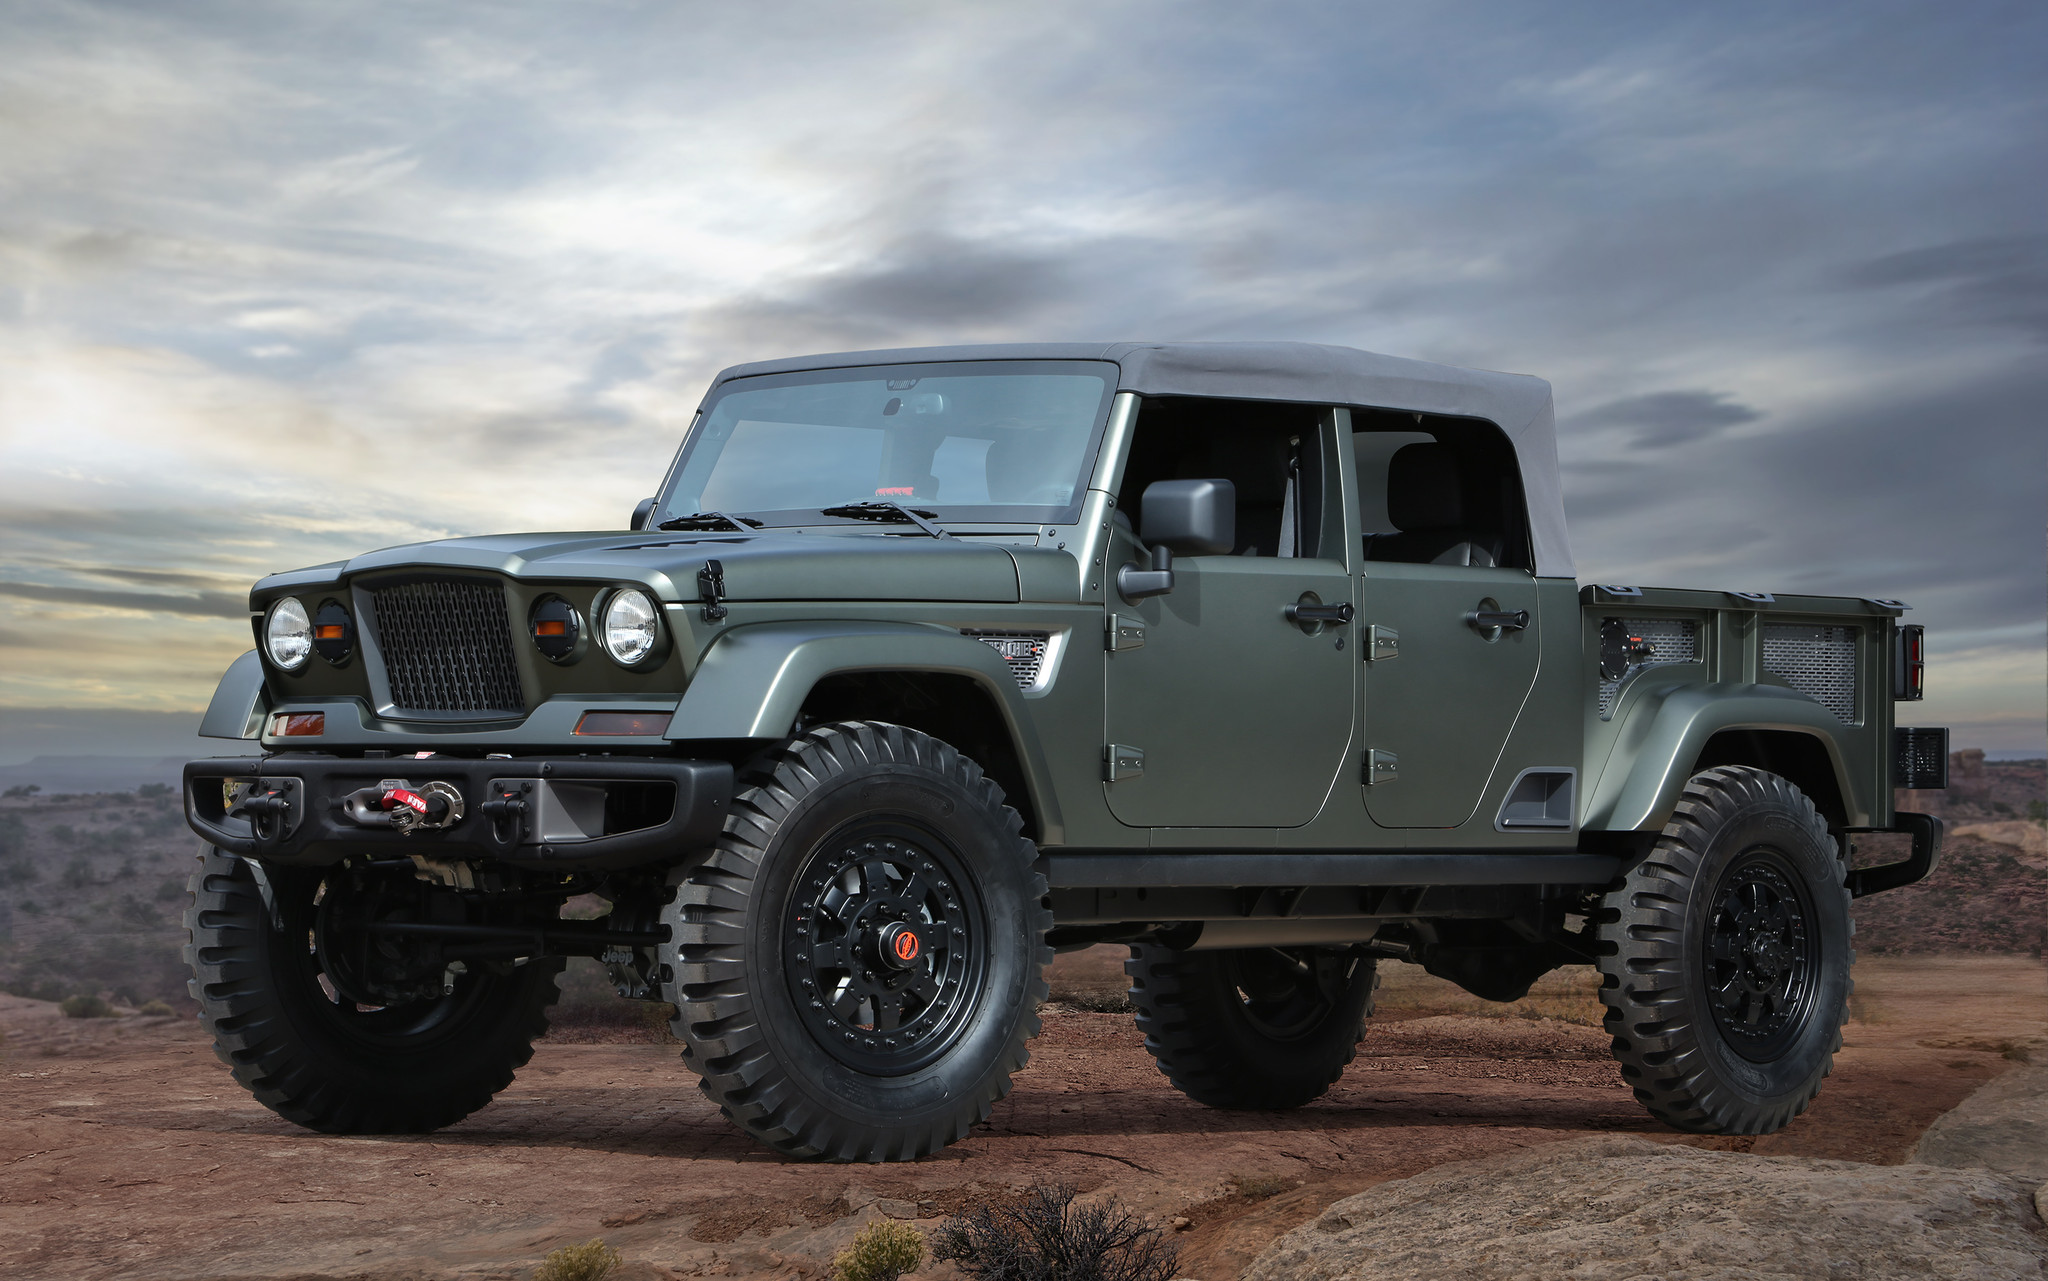 Jeep celebrates 75 years with record growth despite quality concerns